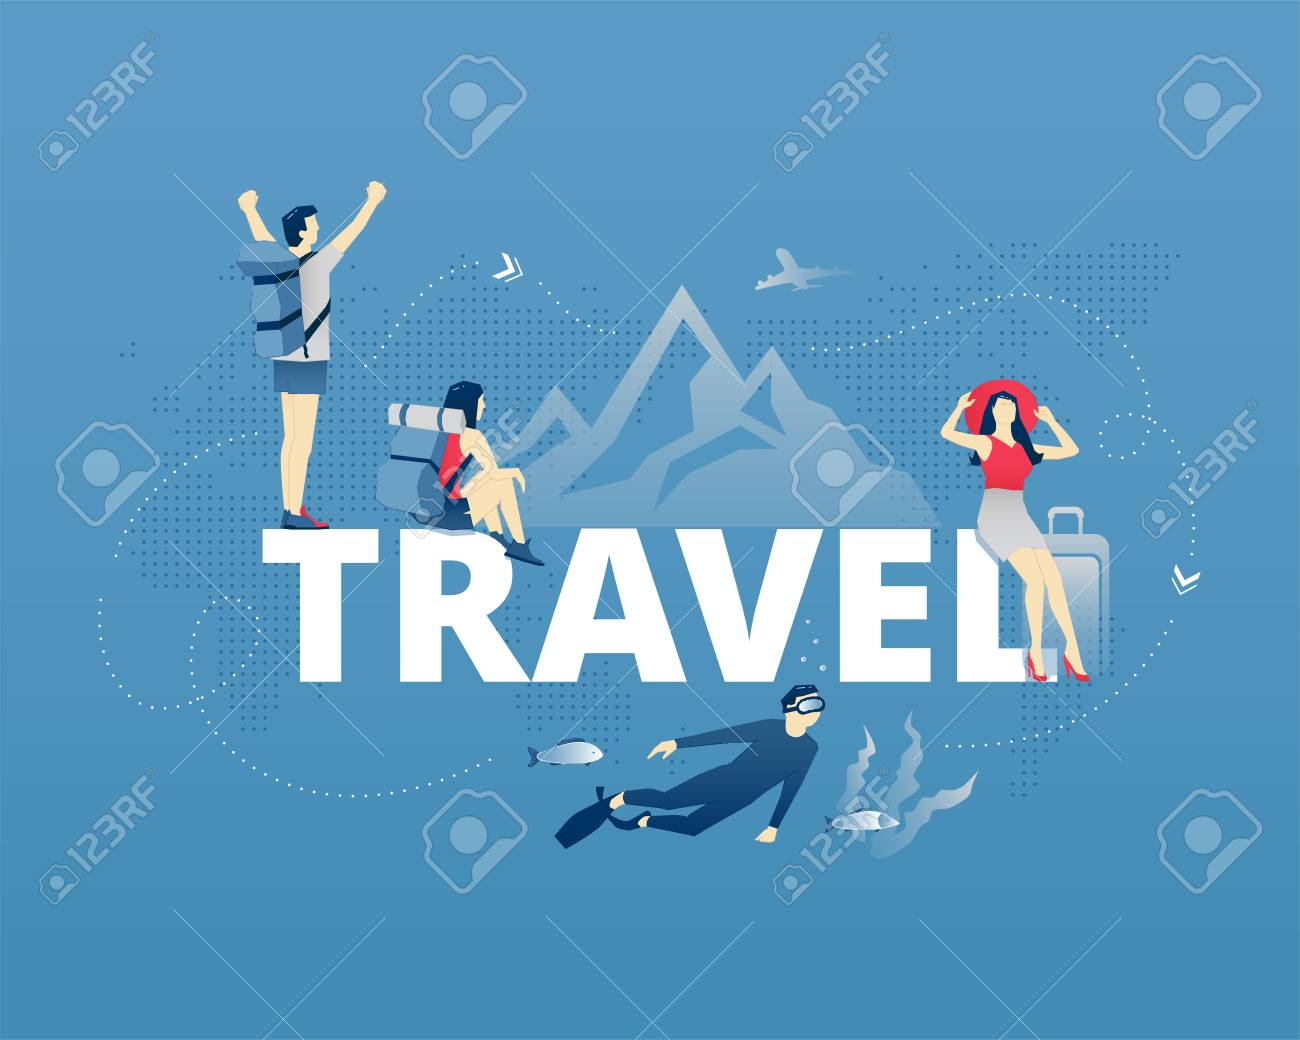 visual metaphor of world traveling exploring and vacation men